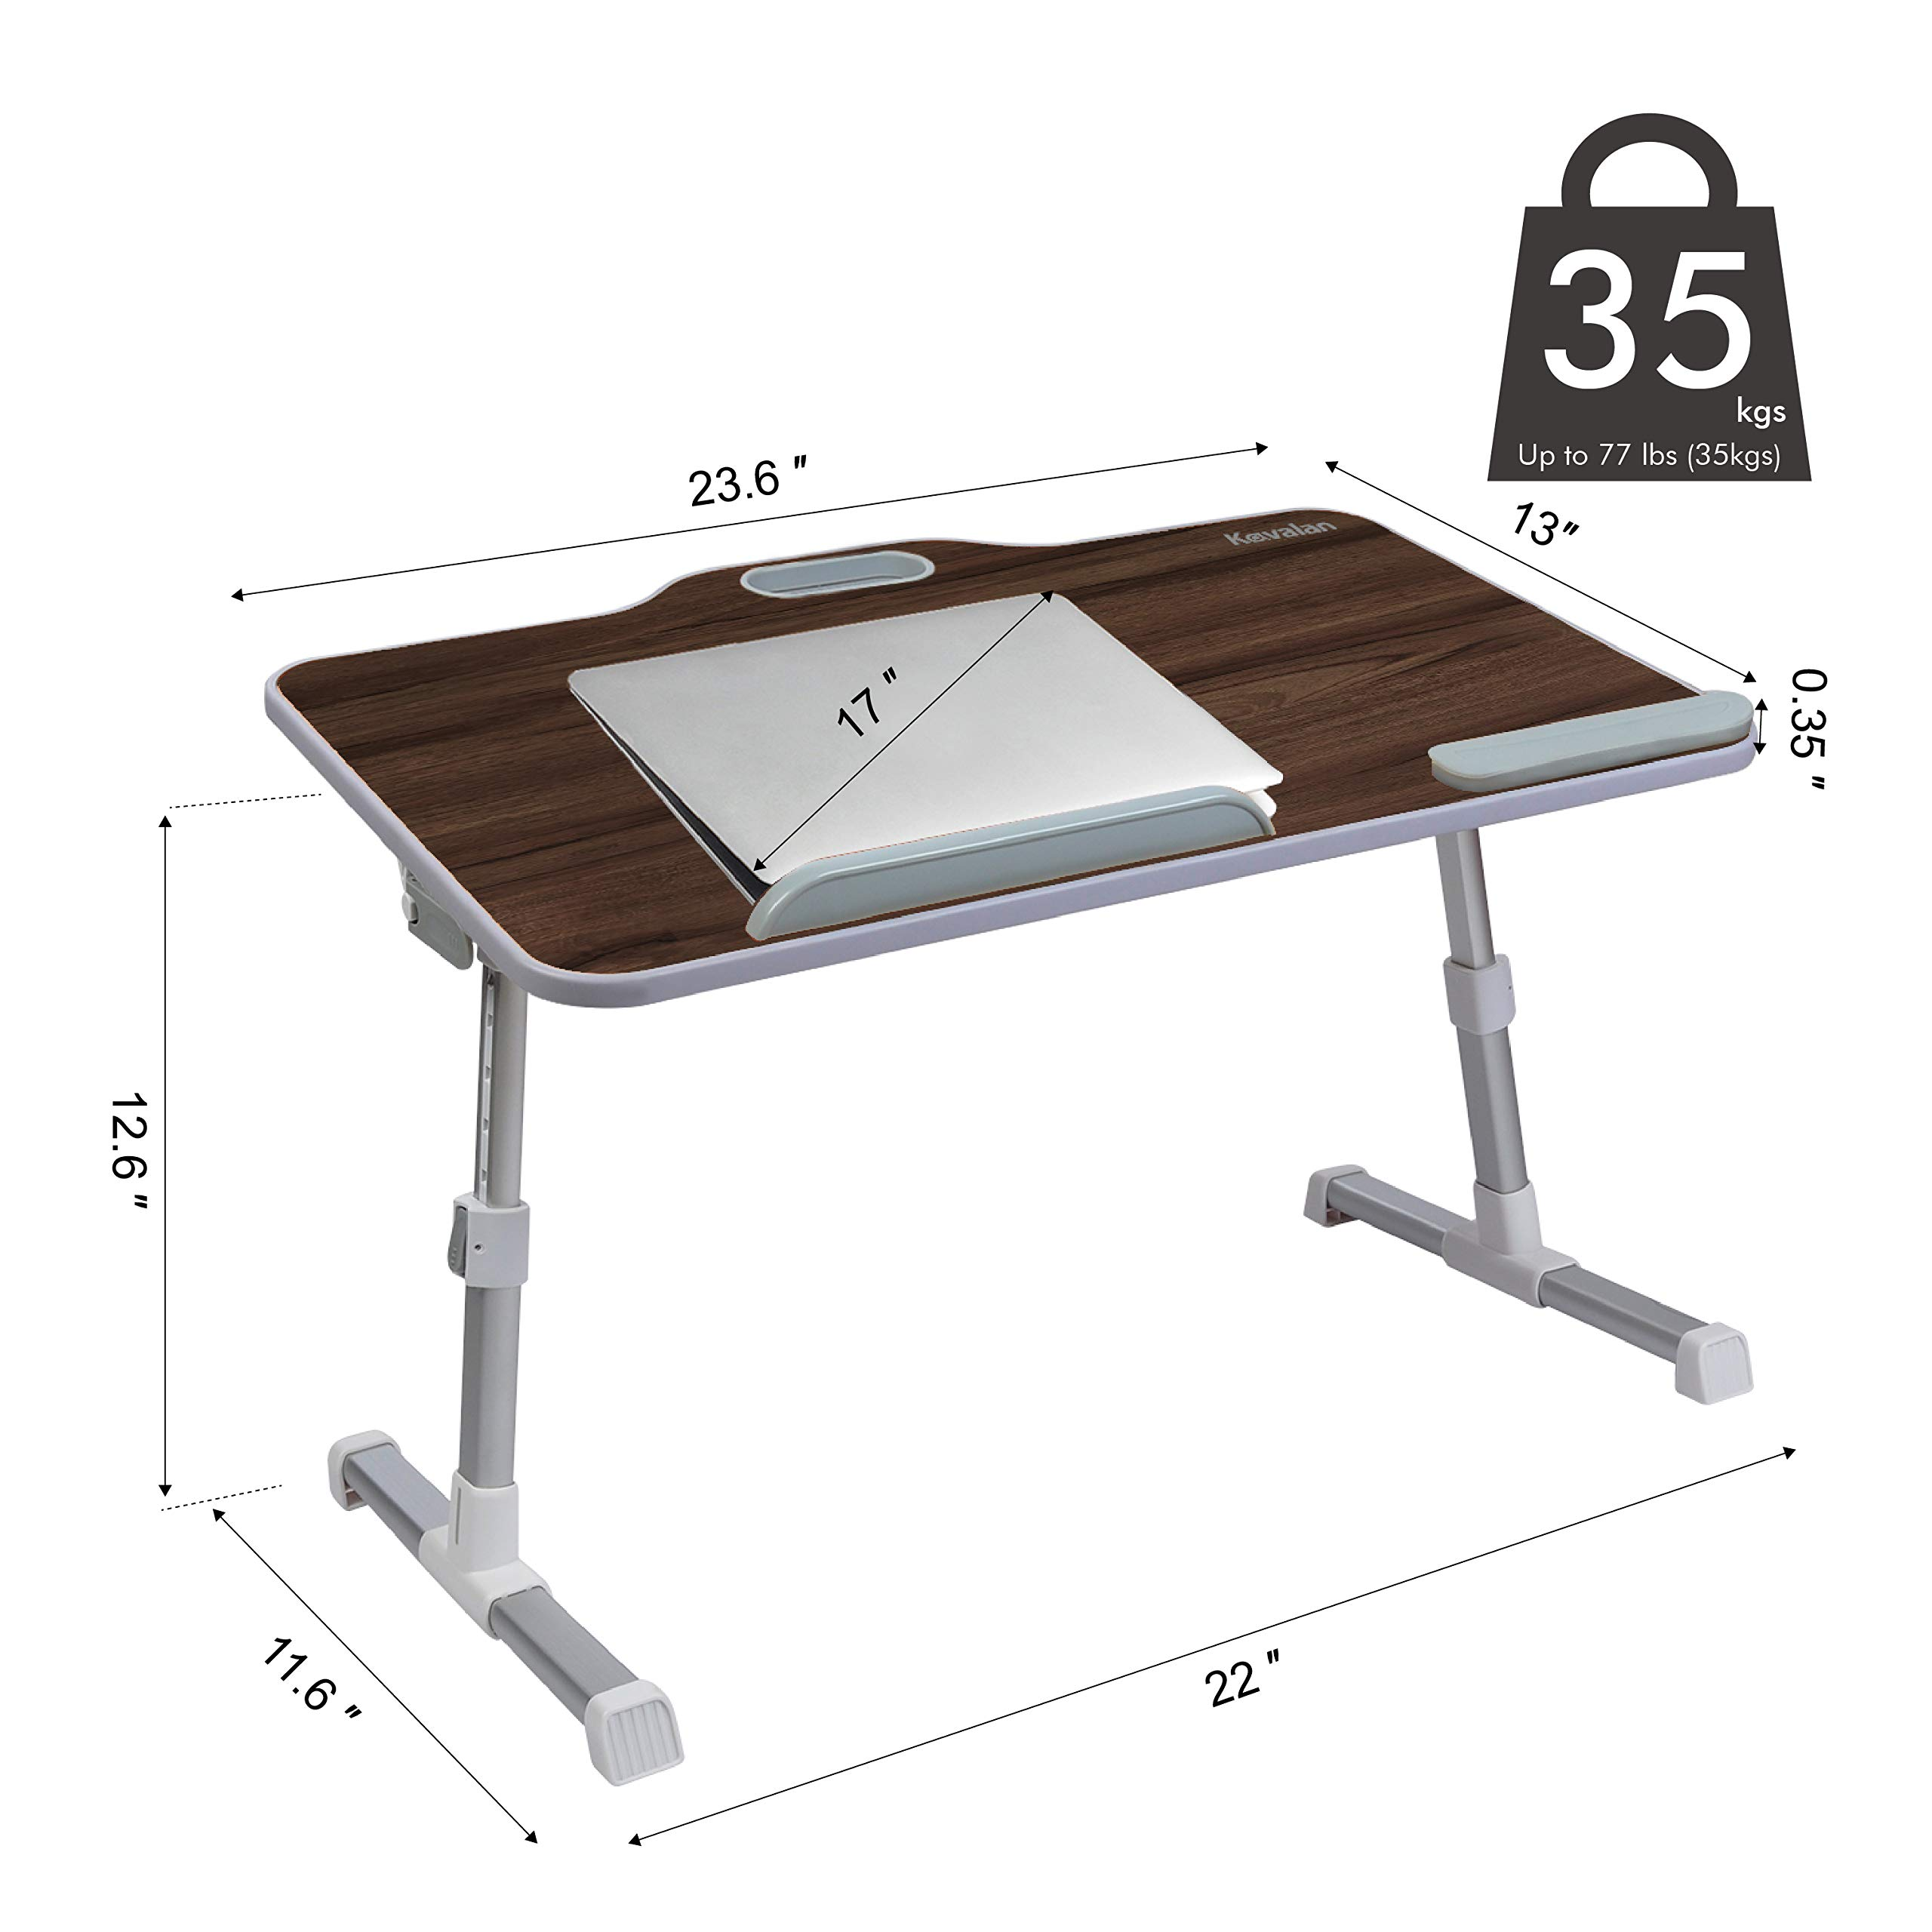 Kavalan Large Size Portable Laptop Table with Handle, Height & Angle Adjustable Sit and Stand Desk, Bed & Breakfast Table Tray, Foldable Notebook Stand Holder for Sofa Couch - Black Teak by Kavalan (Image #7)